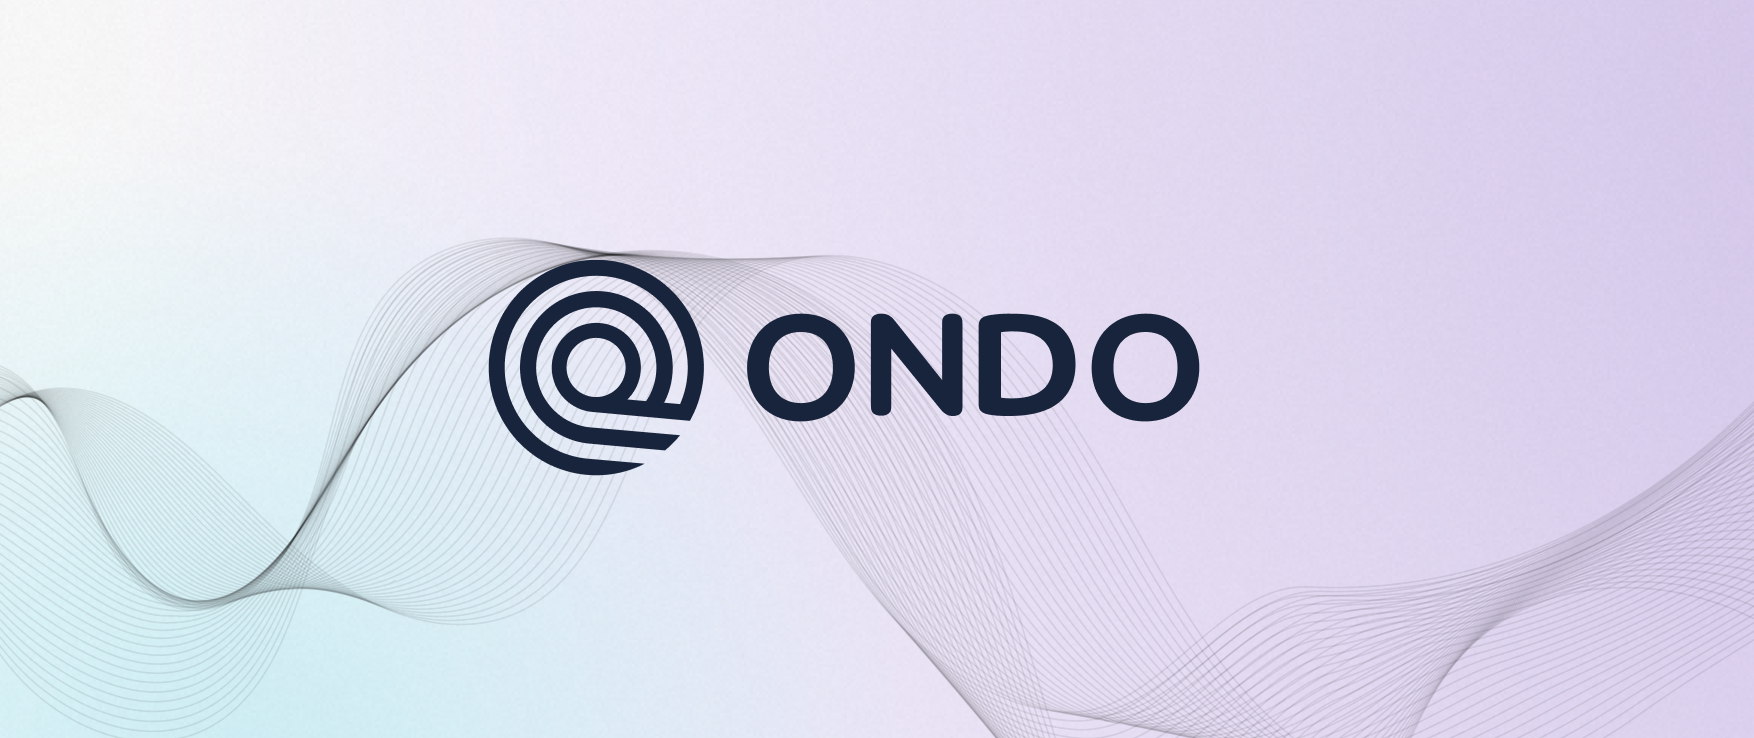 Former Goldman Sachs employees launch DeFi protocol Ondo with $4 million in seed funding